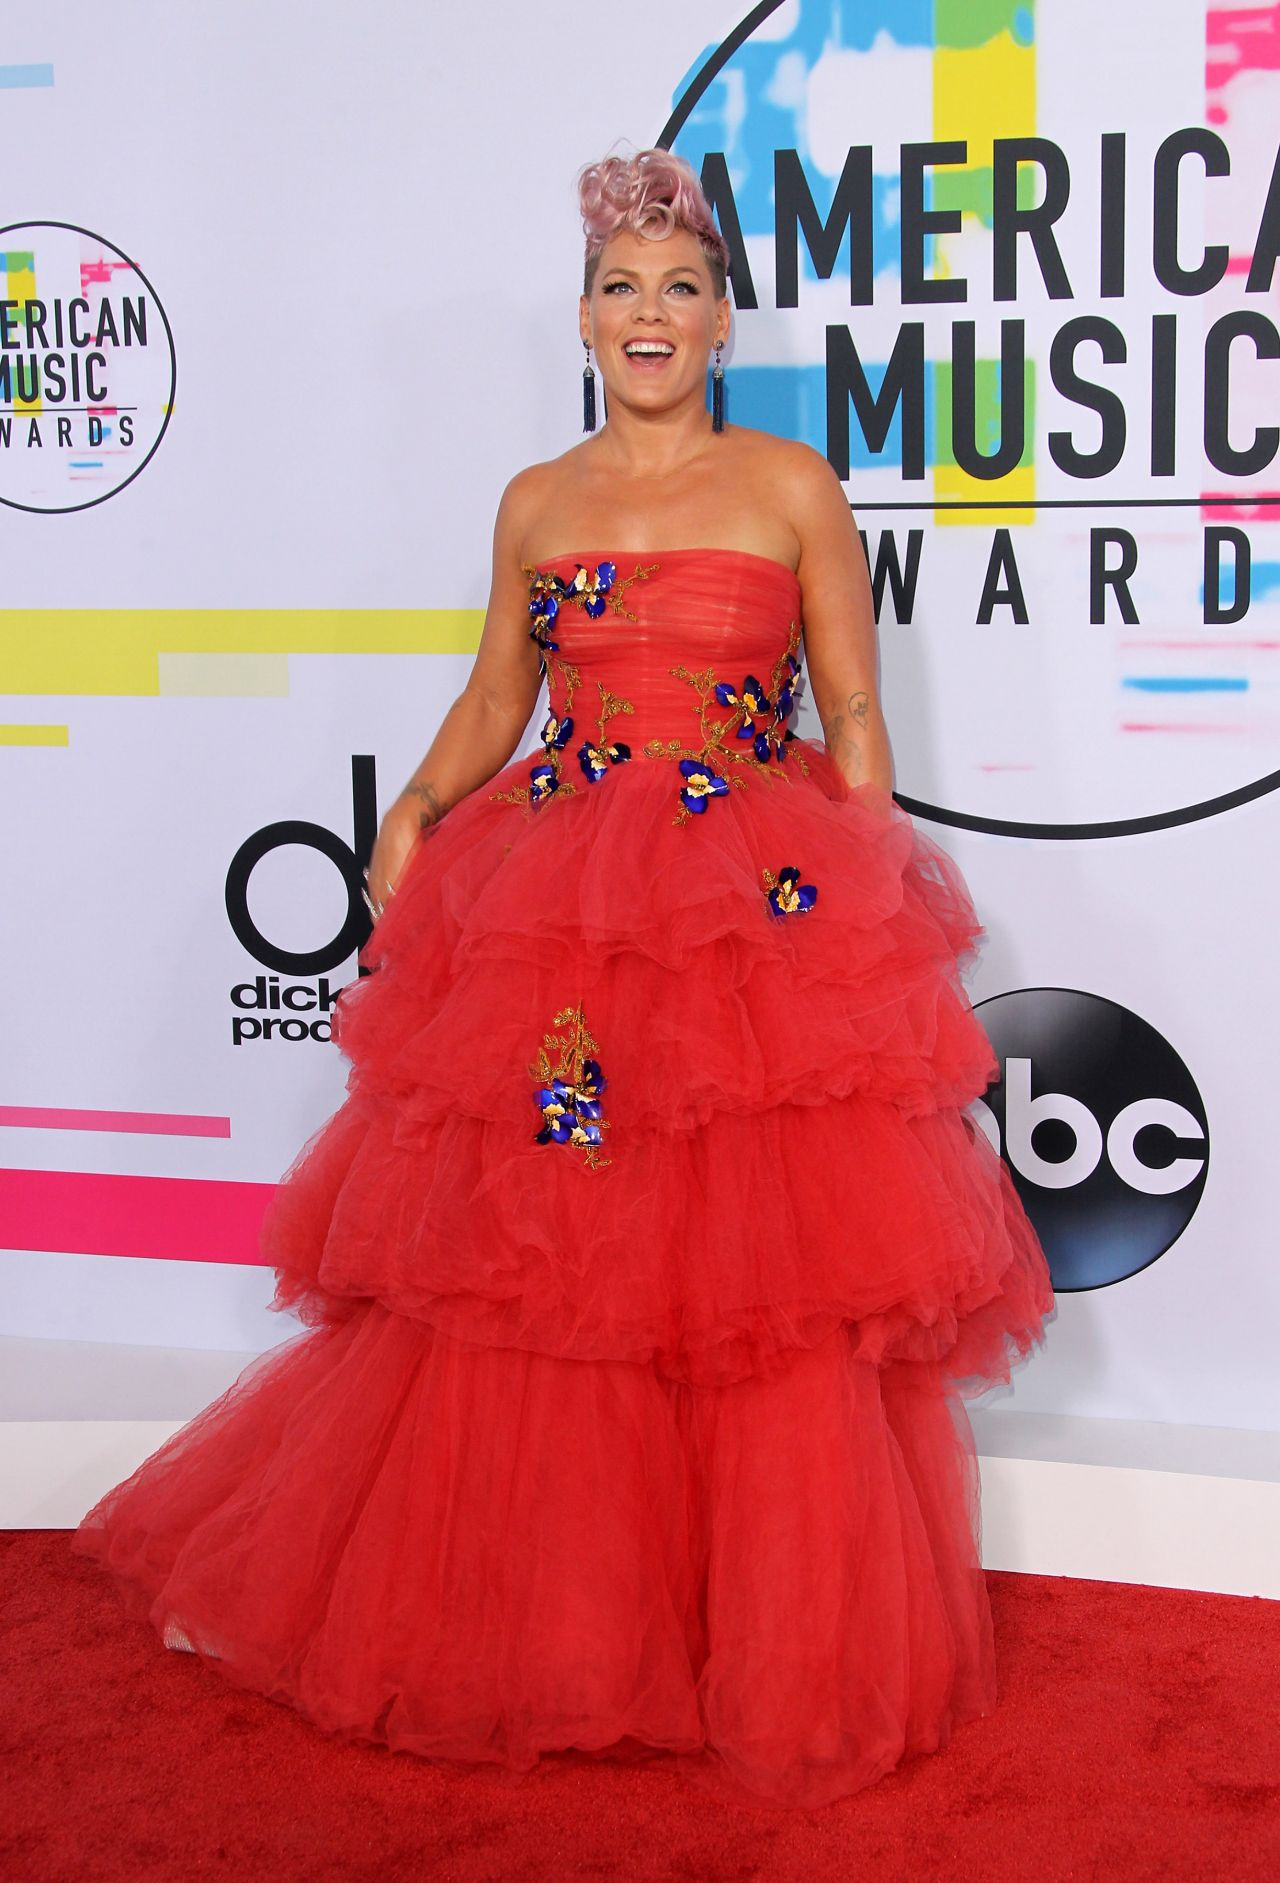 http://celebmafia.com/wp-content/uploads/2017/11/pink-american-music-awards-2017-in-los-angeles-0.jpg